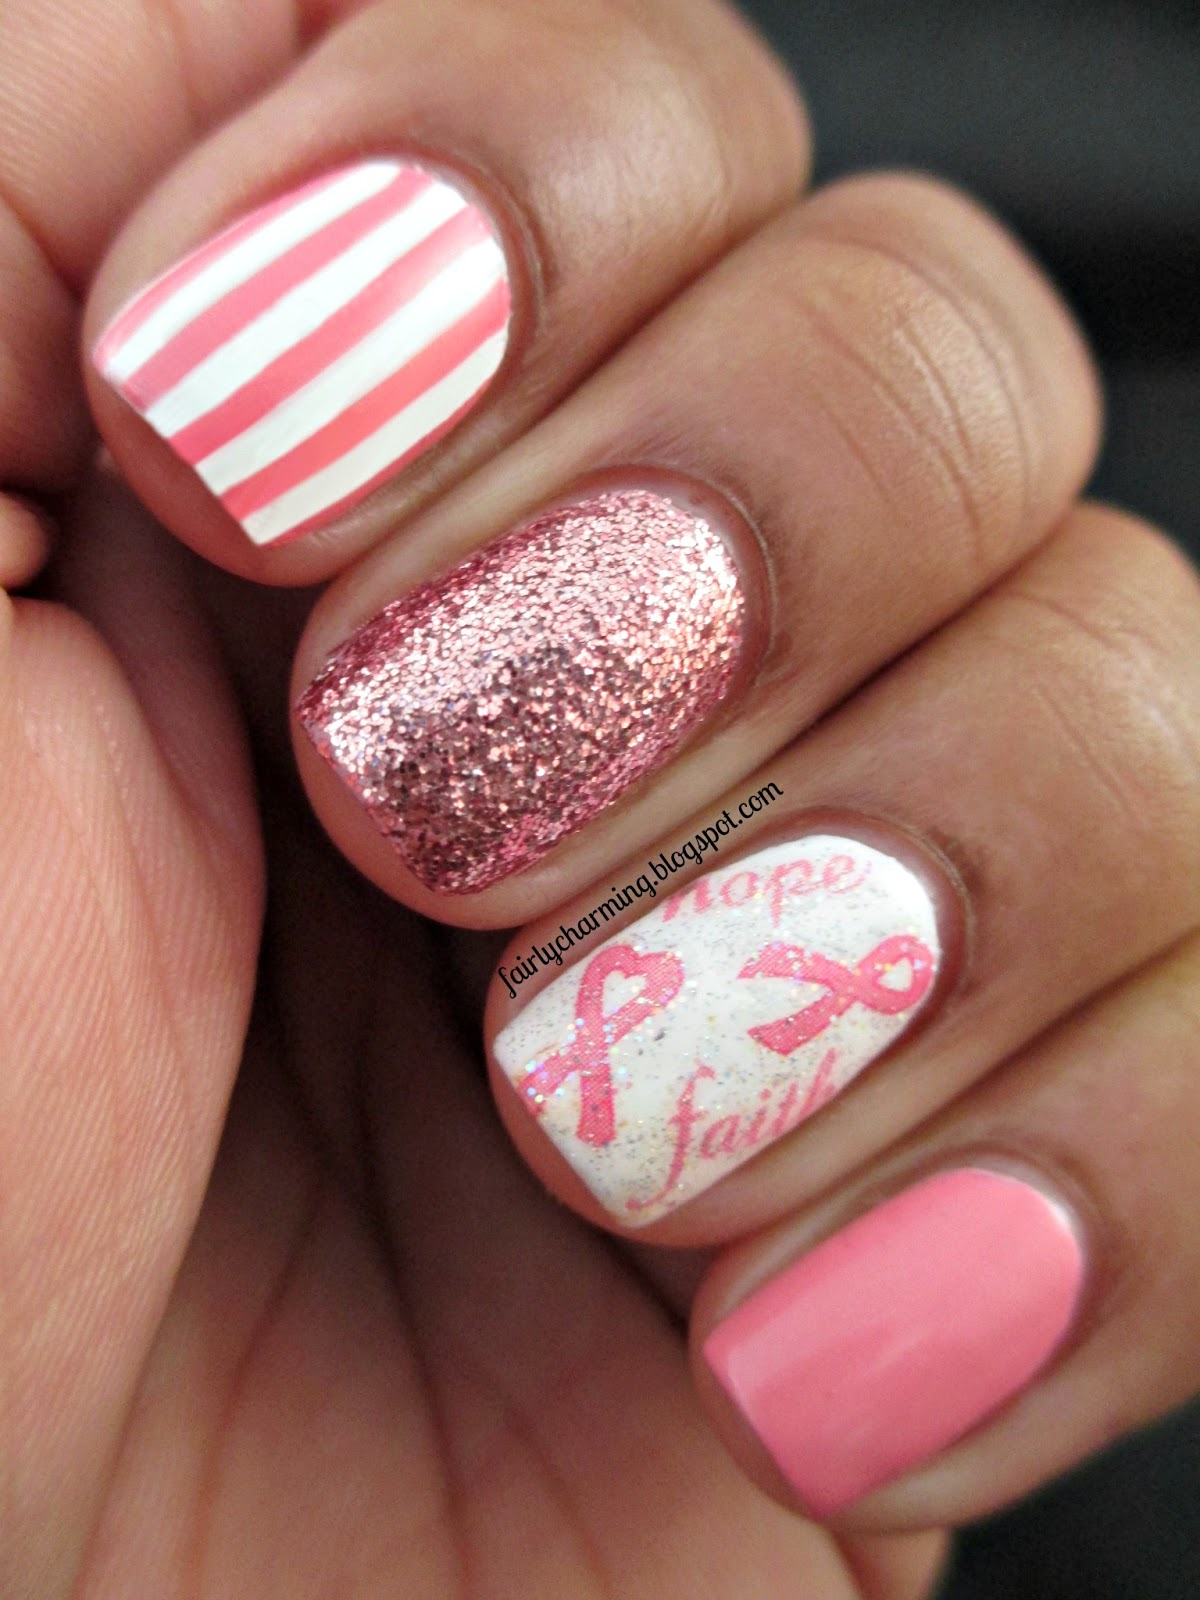 Joby Nail Art Think Pink Promotion Stripes Glitter Decals